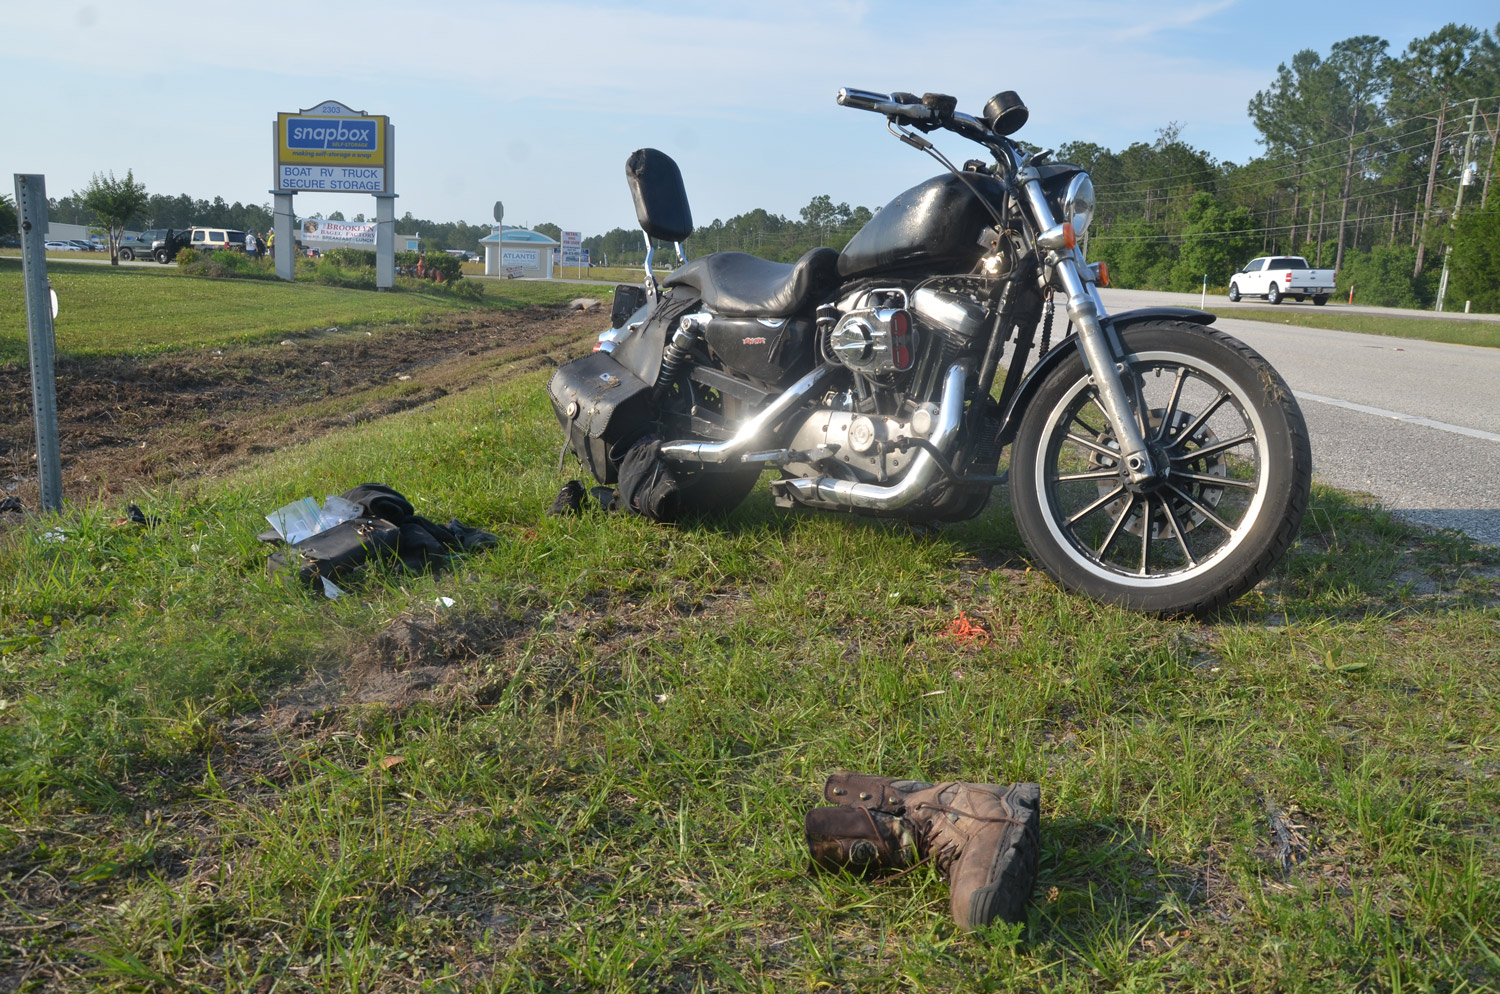 The victims' motorcycle after it was righted by the side of U.S. 1 this afternoon, with some of the victims' belongings still at the scene. Click on the image for larger view. (© FlaglerLive)